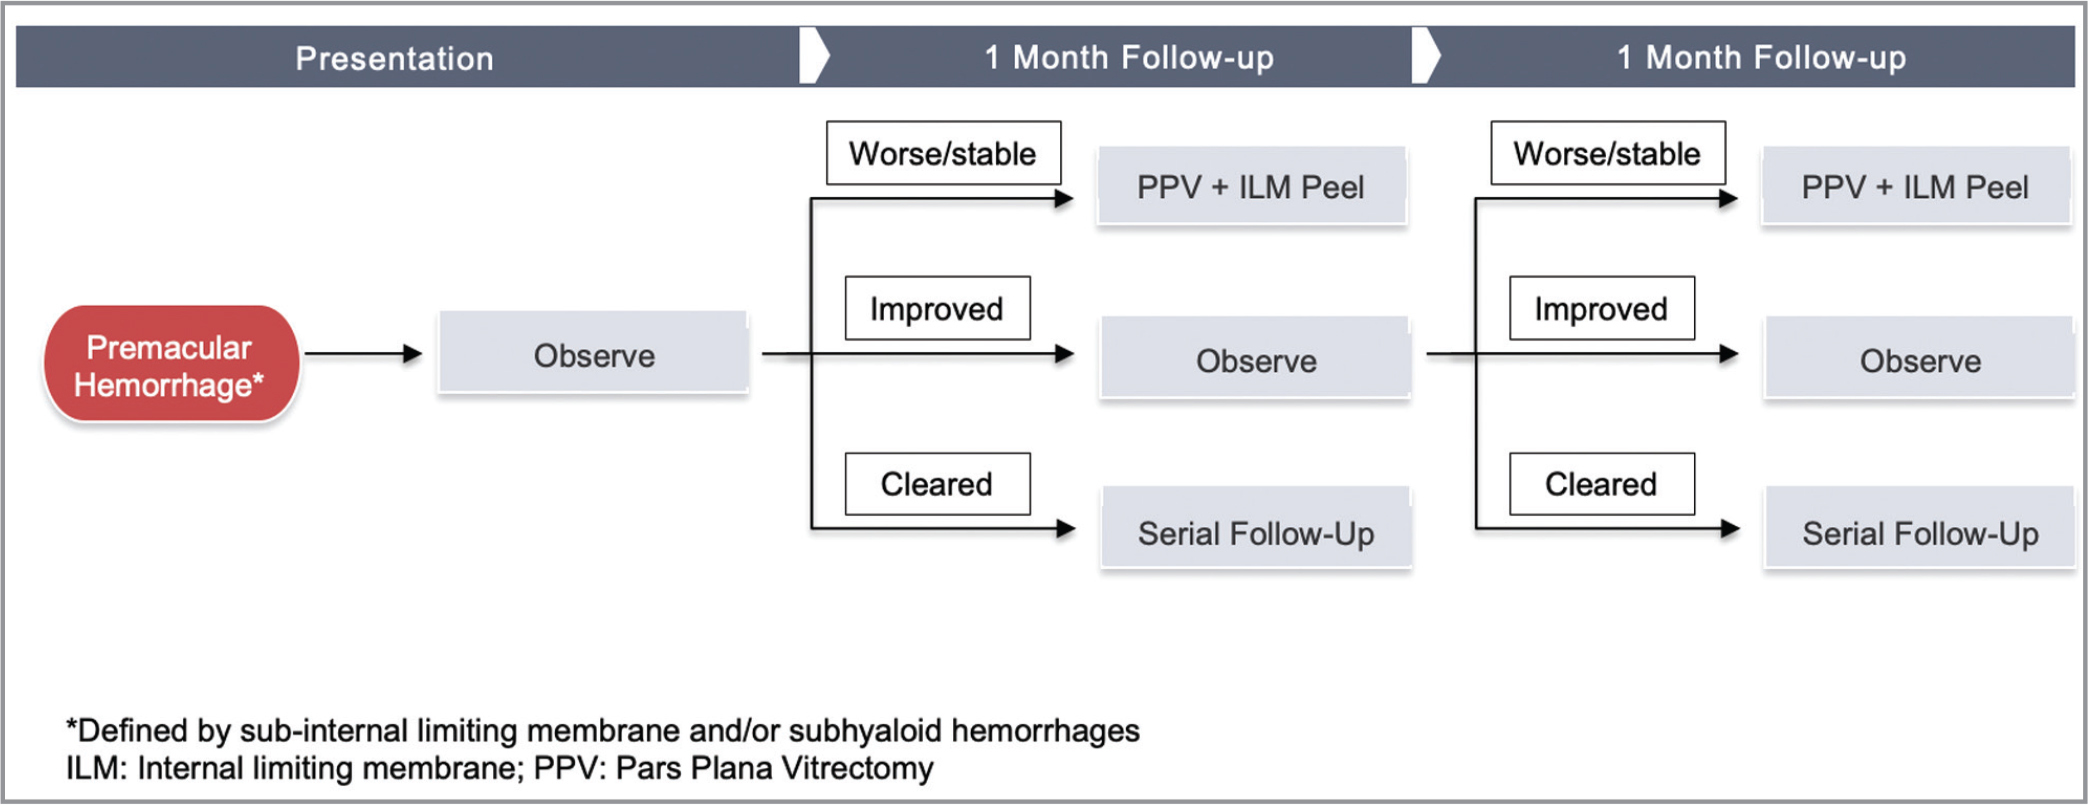 Flow chart demonstrating the management of non-accidental trauma infants in the study based on the status of premacular hemorrhage.